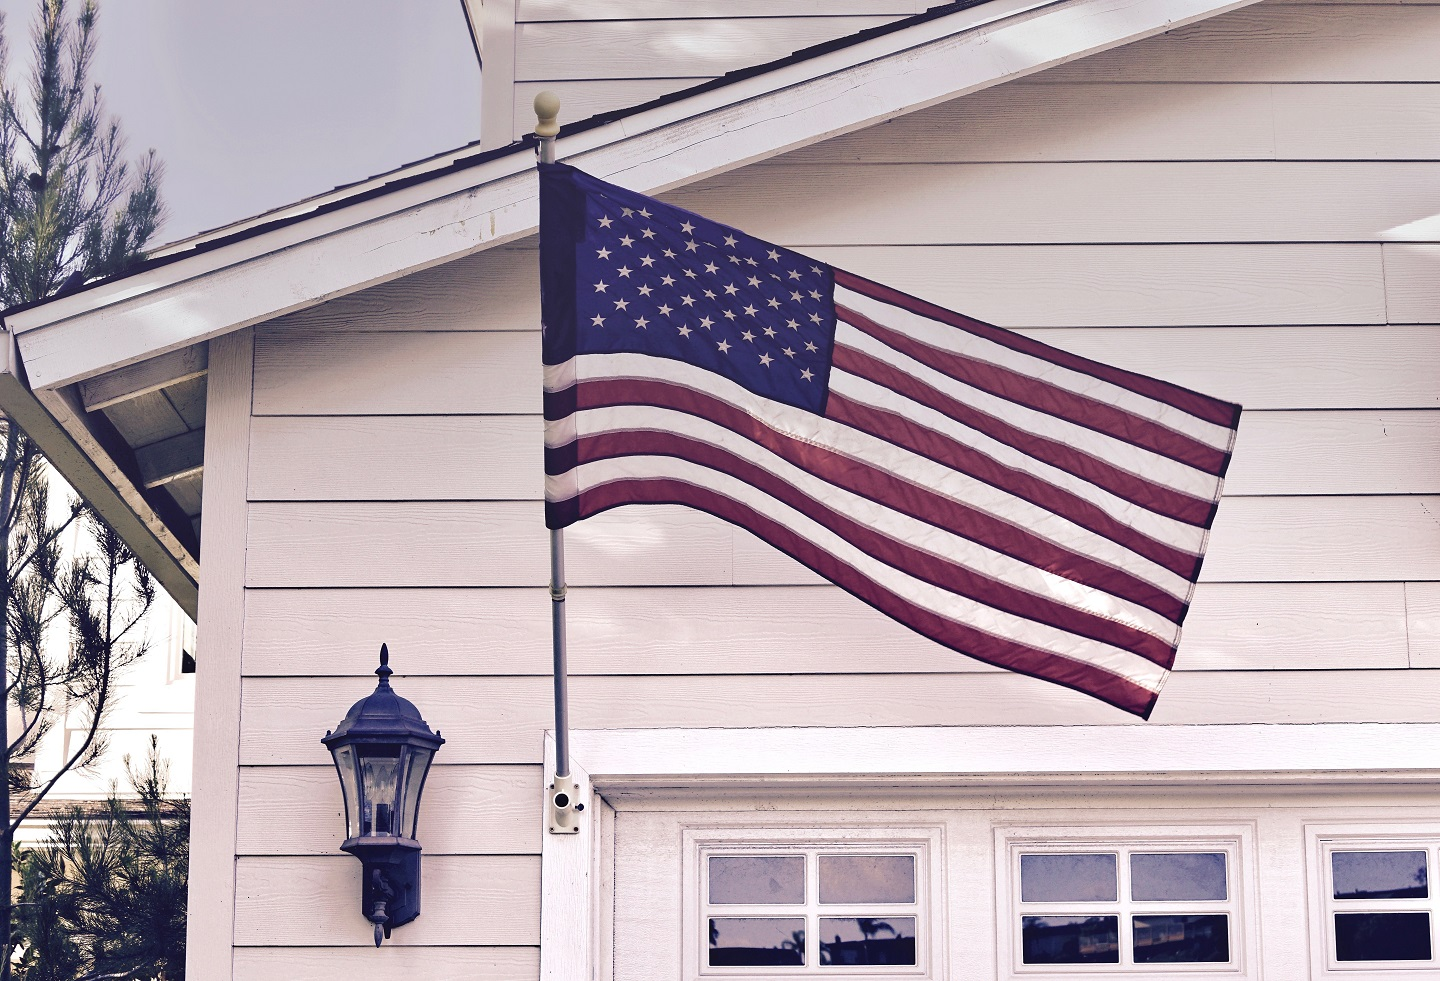 home in colorado springs with an american flag